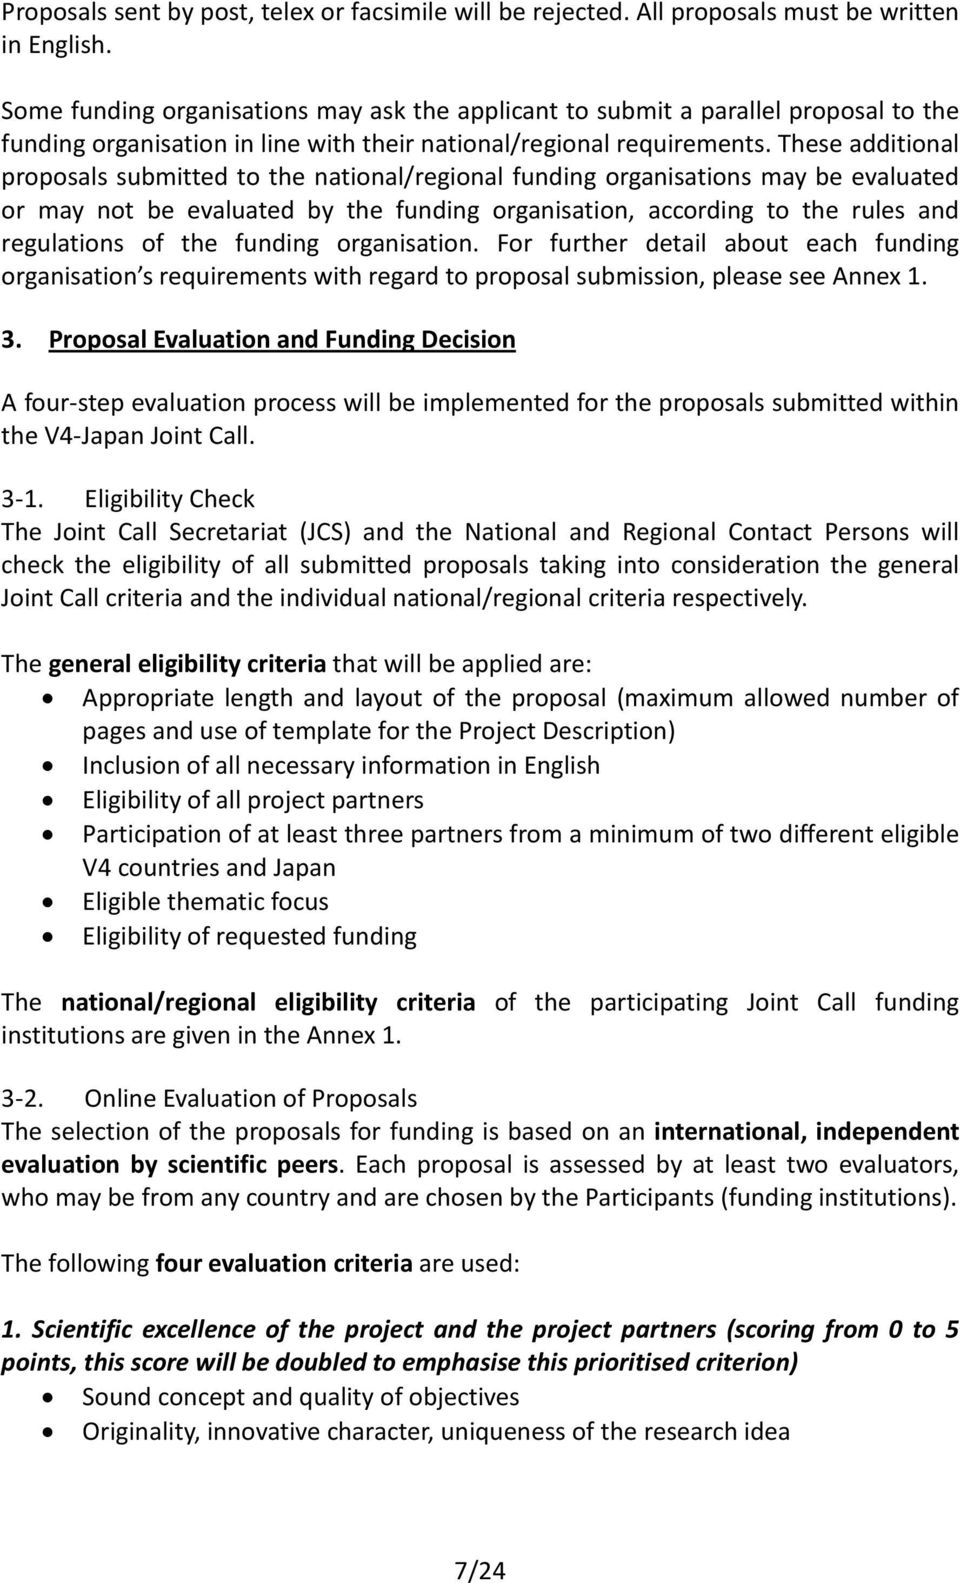 These additional proposals submitted to the national/regional funding organisations may be evaluated or may not be evaluated by the funding organisation, according to the rules and regulations of the